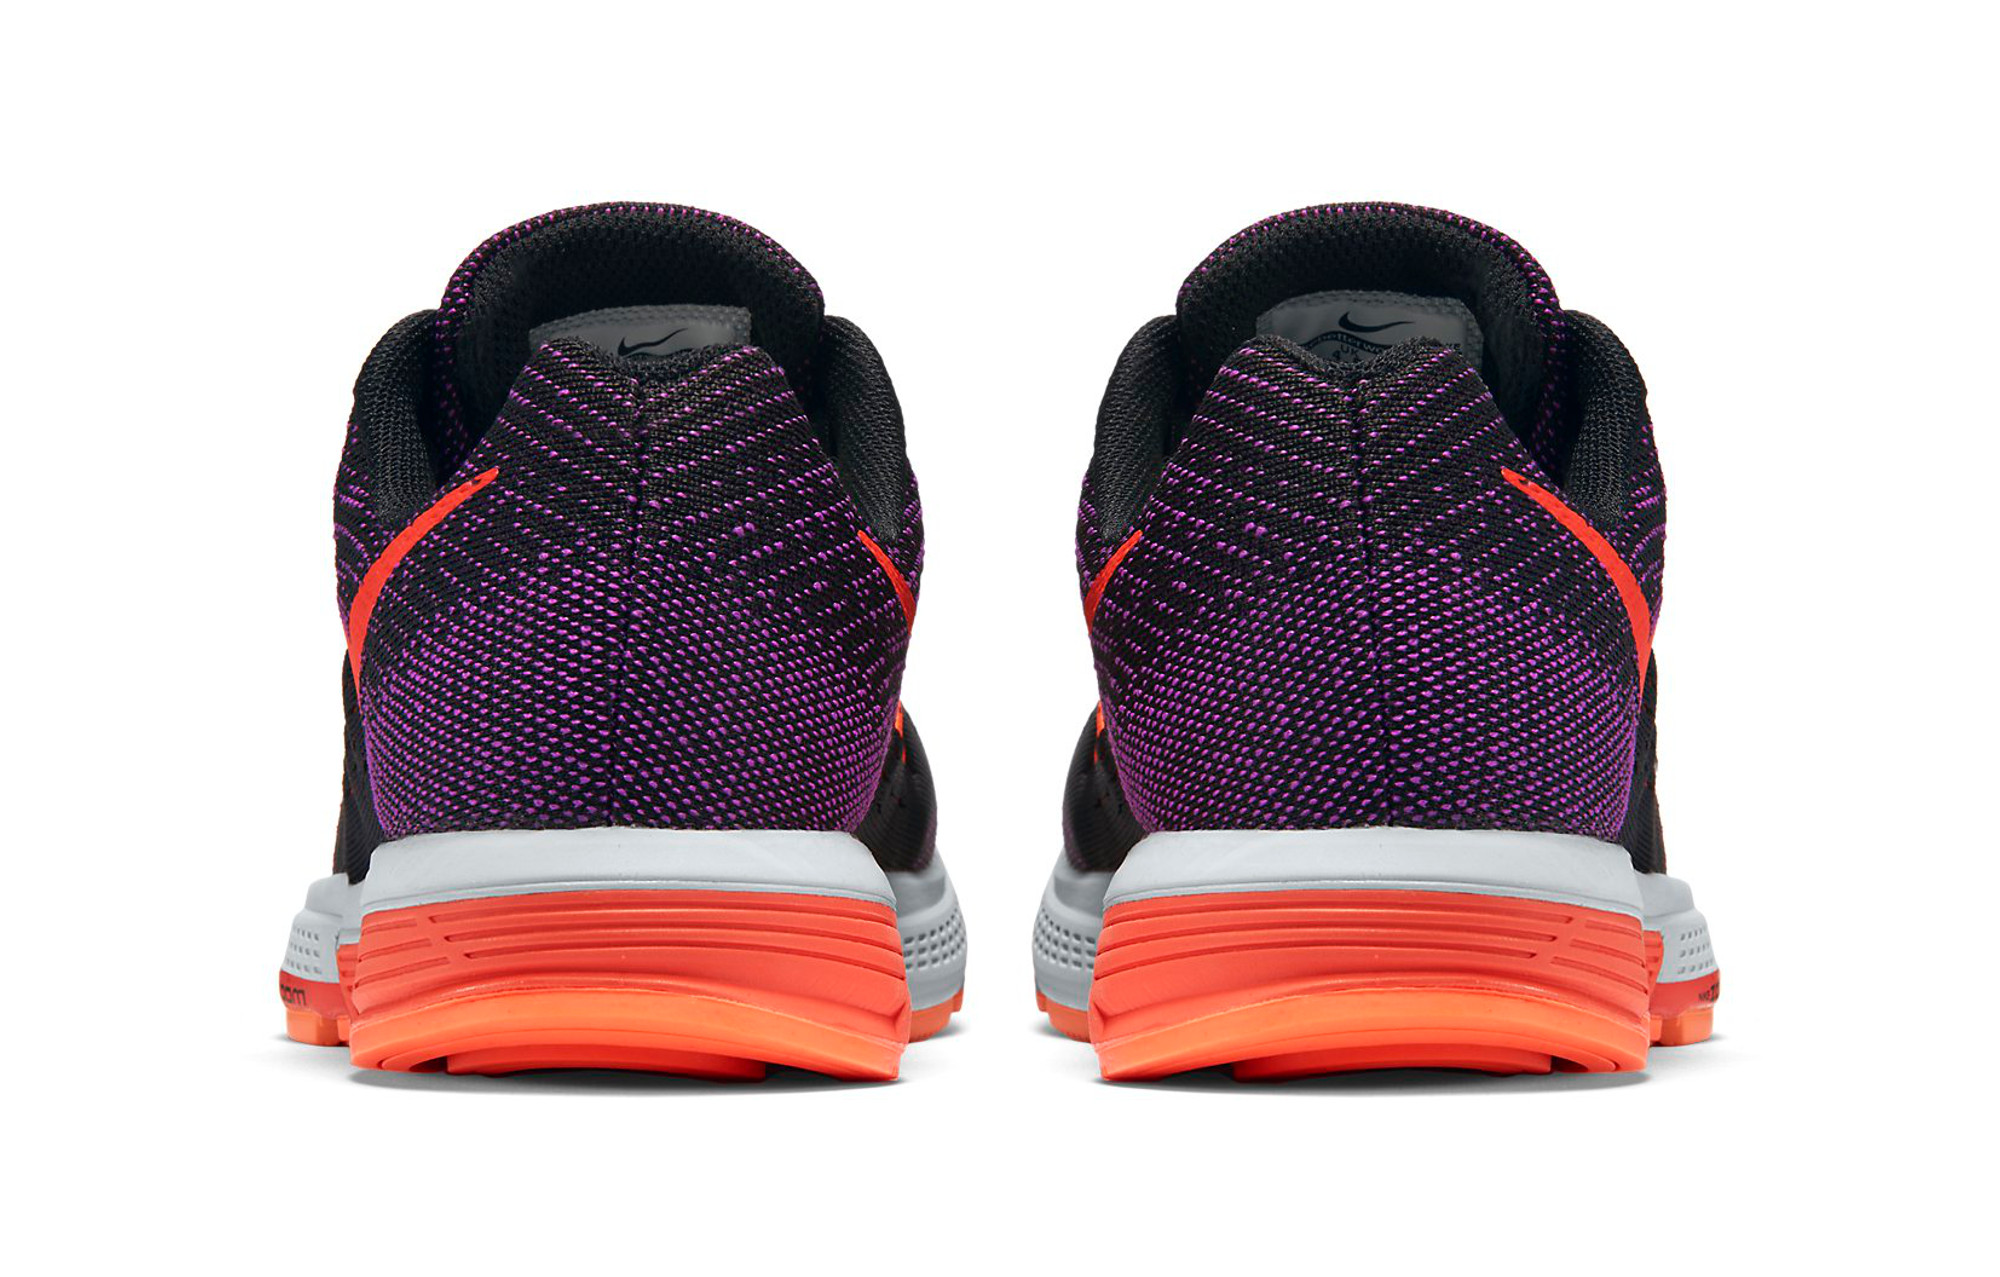 designer fashion afcdd 767b4 NIKE Shoes AIR ZOOM VOMERO 10 Black Orange Purple Women